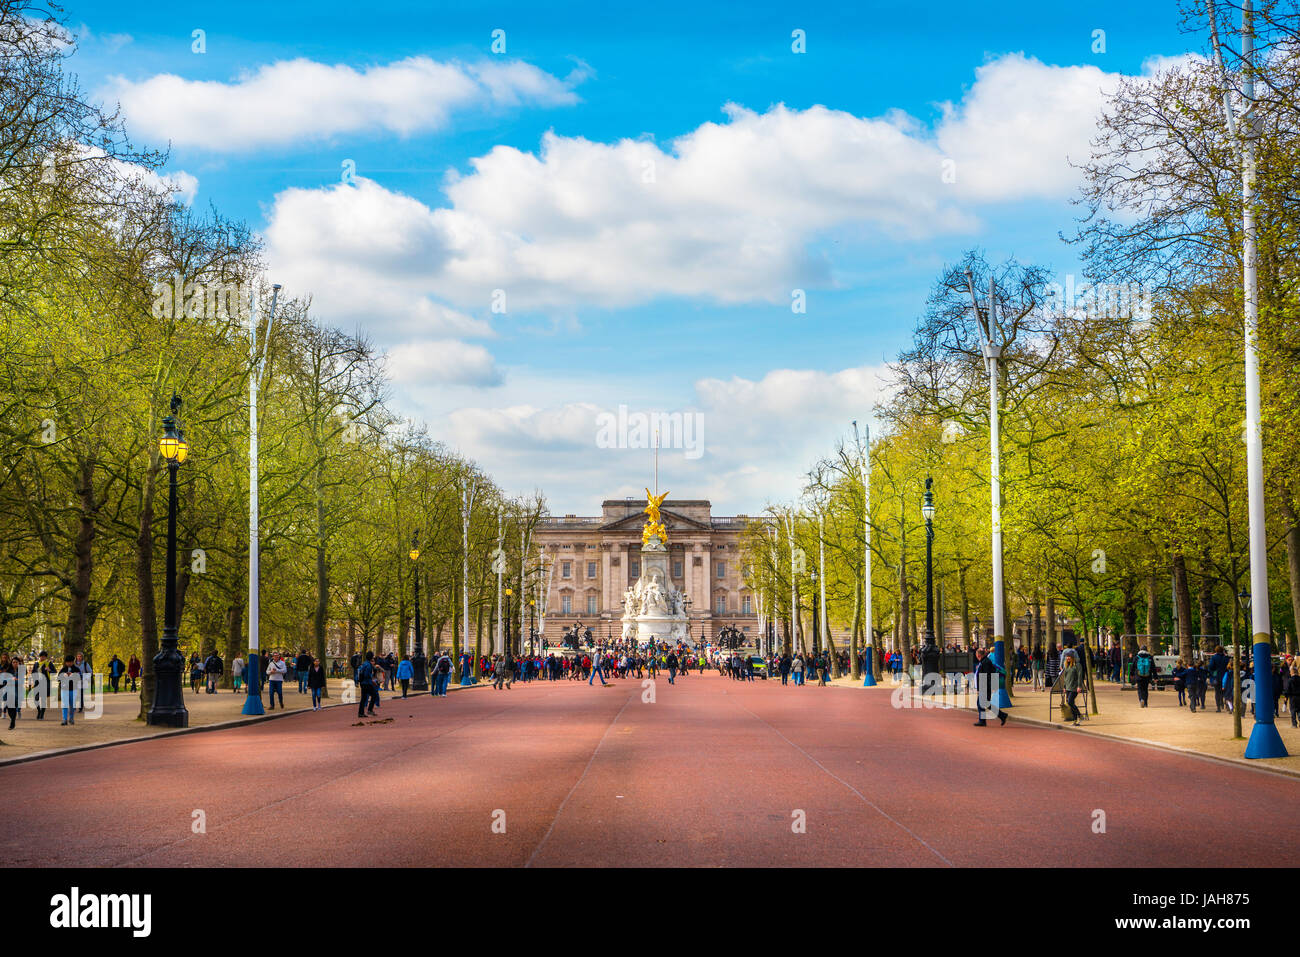 Buckingham Palace and Street The Mall, Westminster, London, England, United Kingdom Stock Photo